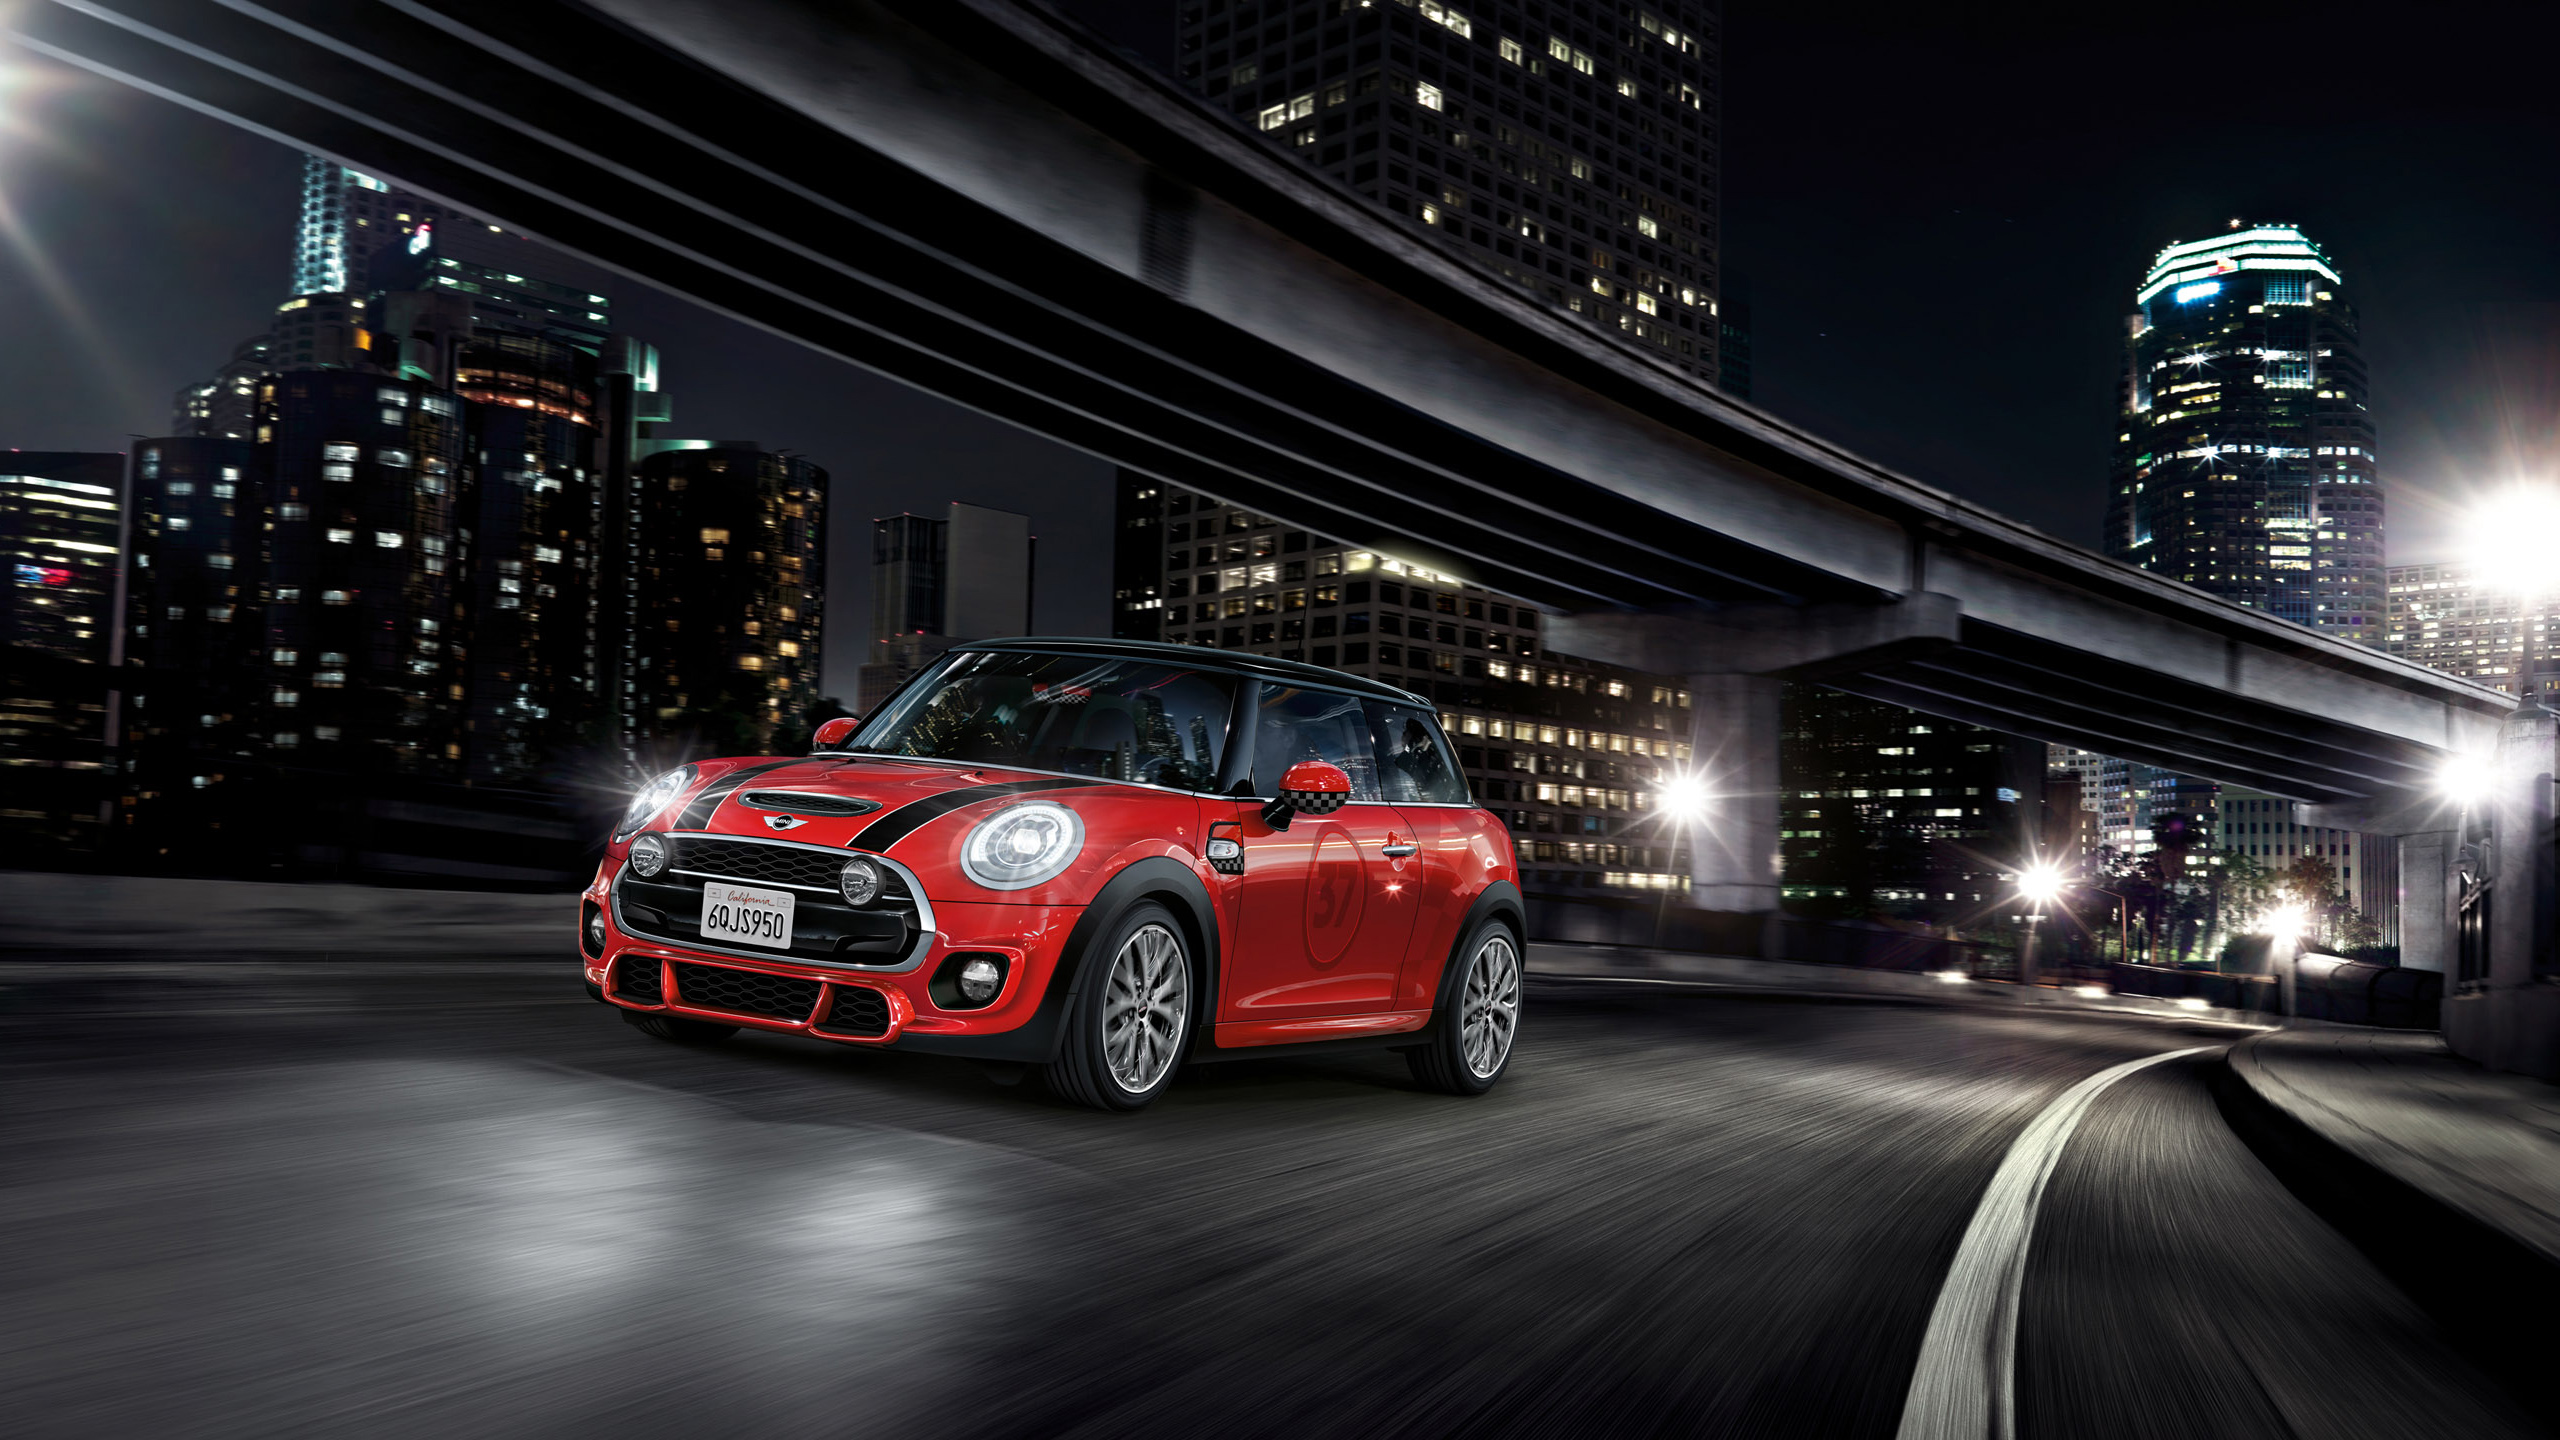 2014 Mini Cooper S F56 Wallpaper HD Car Wallpapers 2560x1440